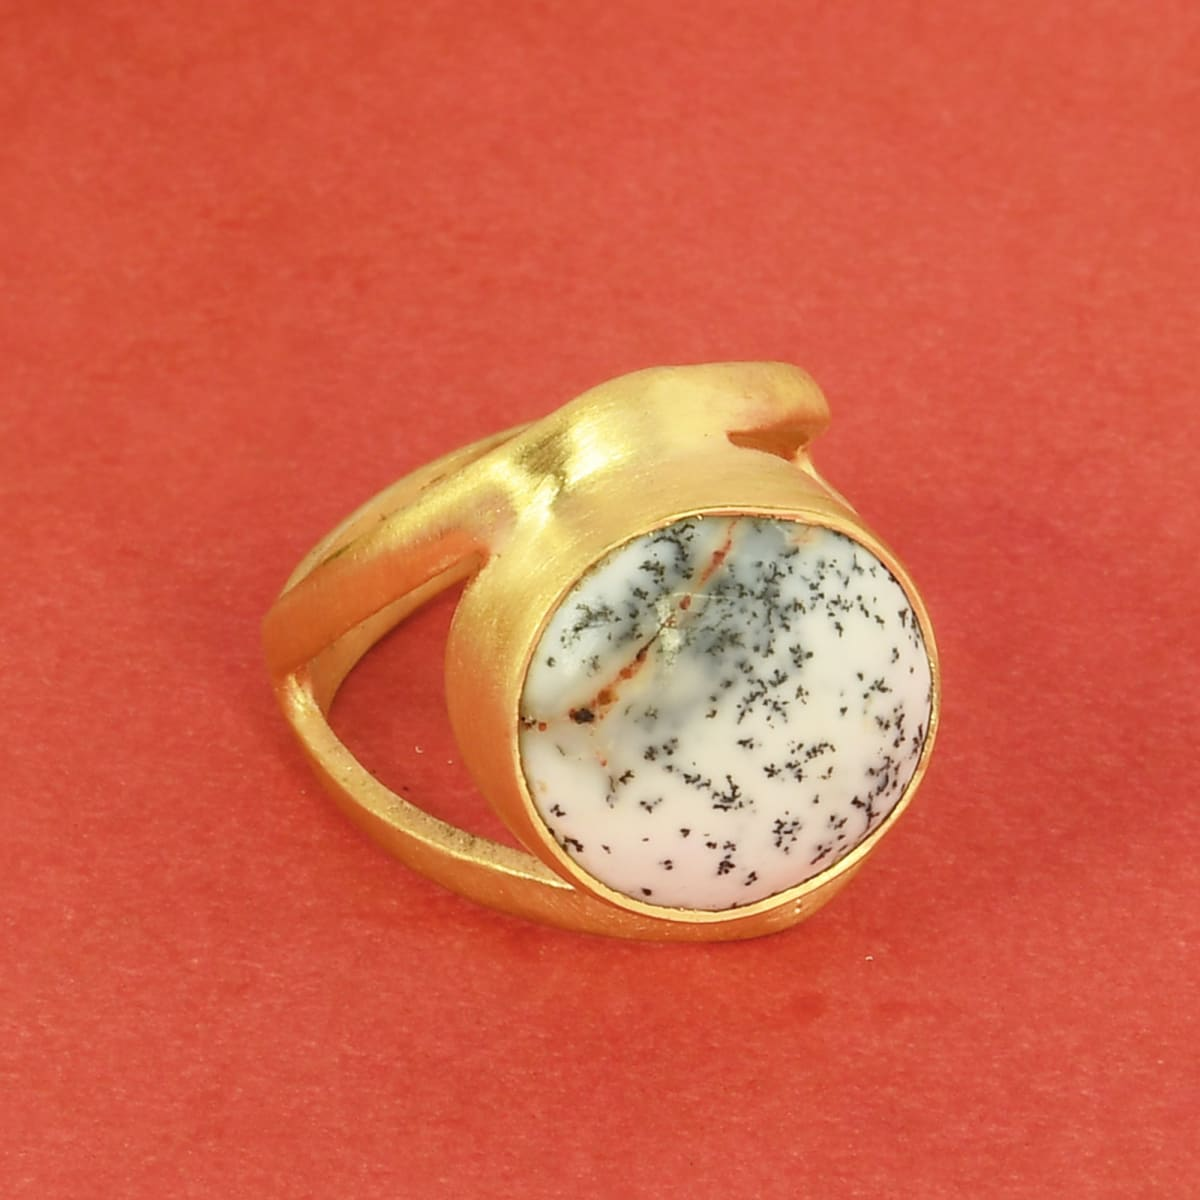 rings Genuine Dendritic Opal Gemstone Bezel Set Women Fashion Ring - by Bhagat Jewels